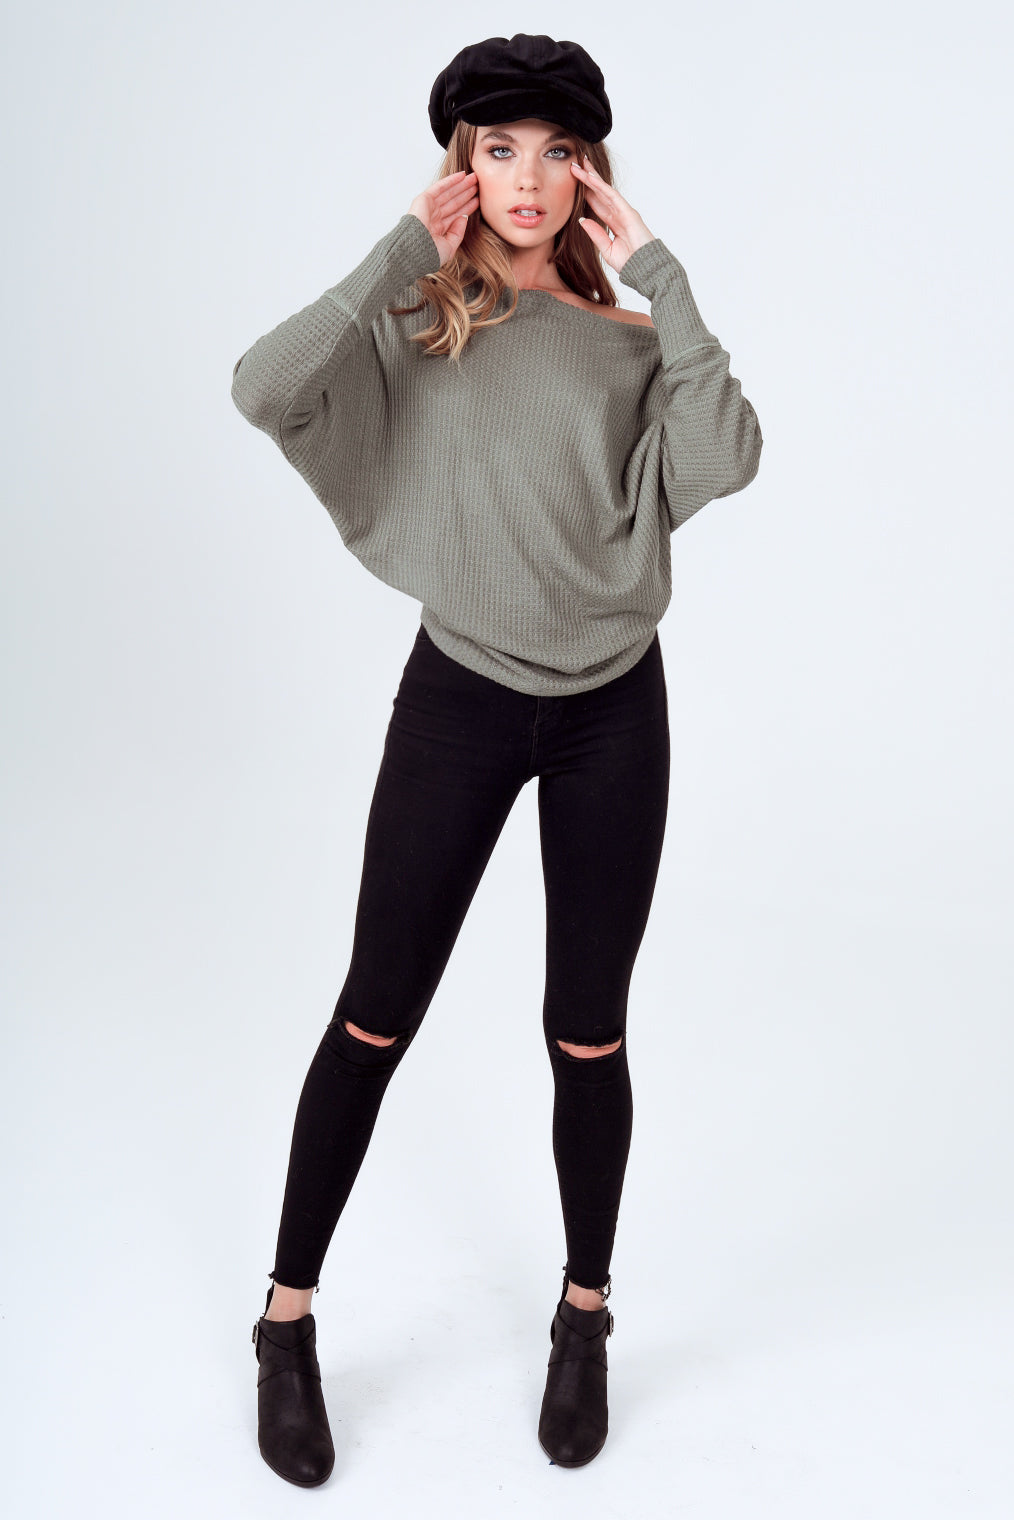 Gypsies & Moondust Boat Neck Long Sleeve Thermal Knit Top in Olive